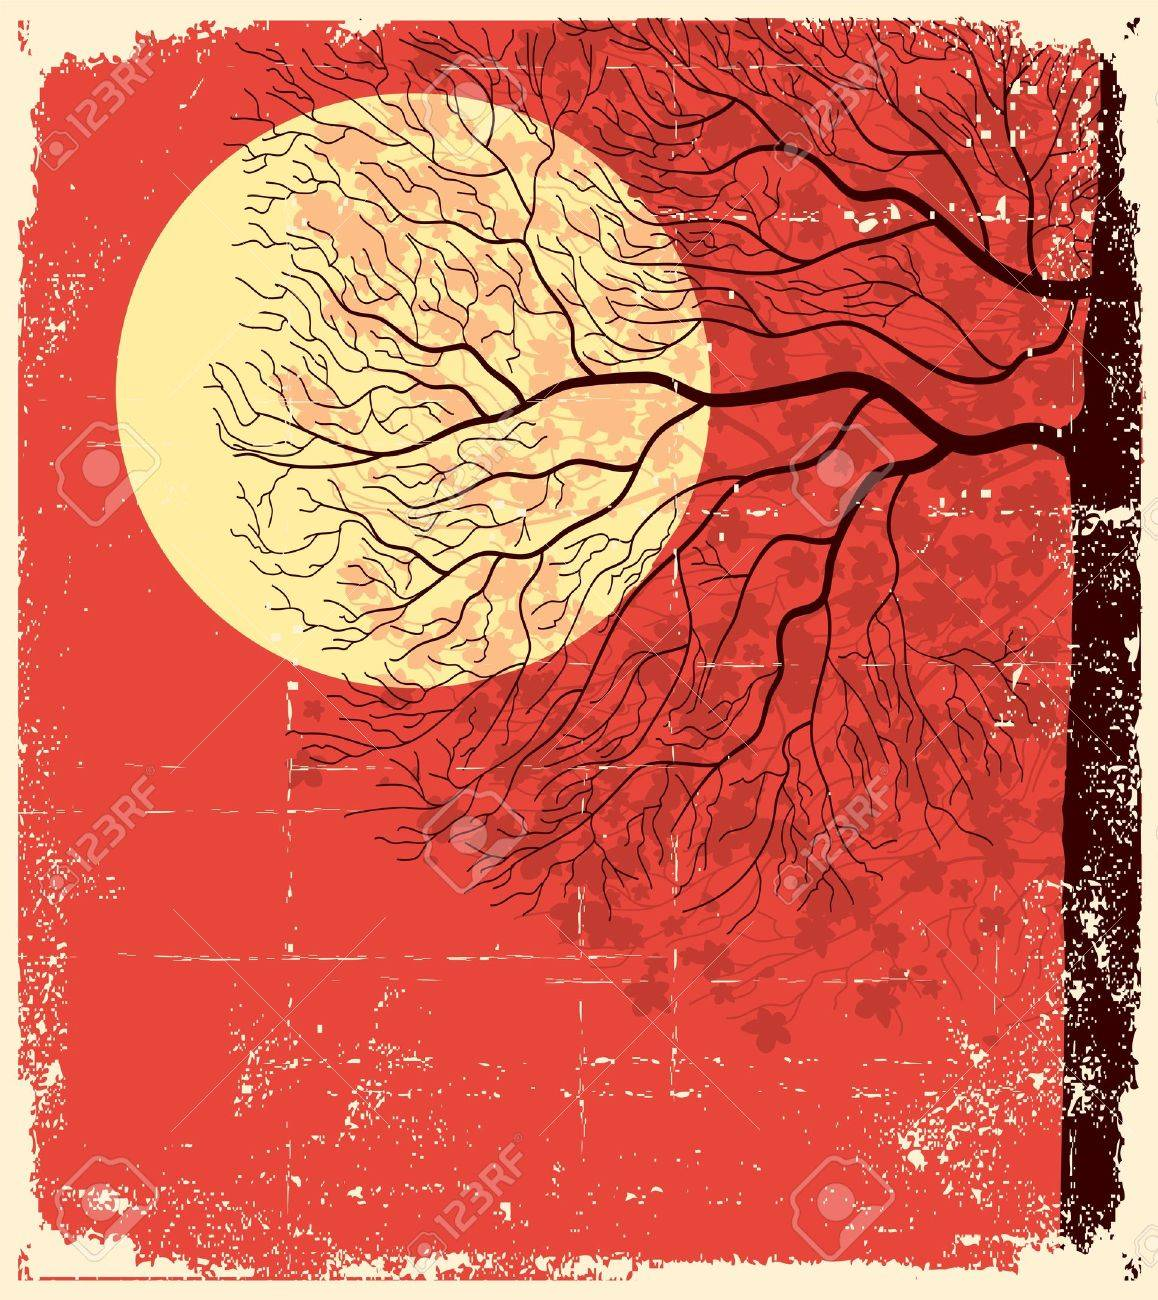 Tree under evening sky and moon lighting. illustration on old paper background - 9717055